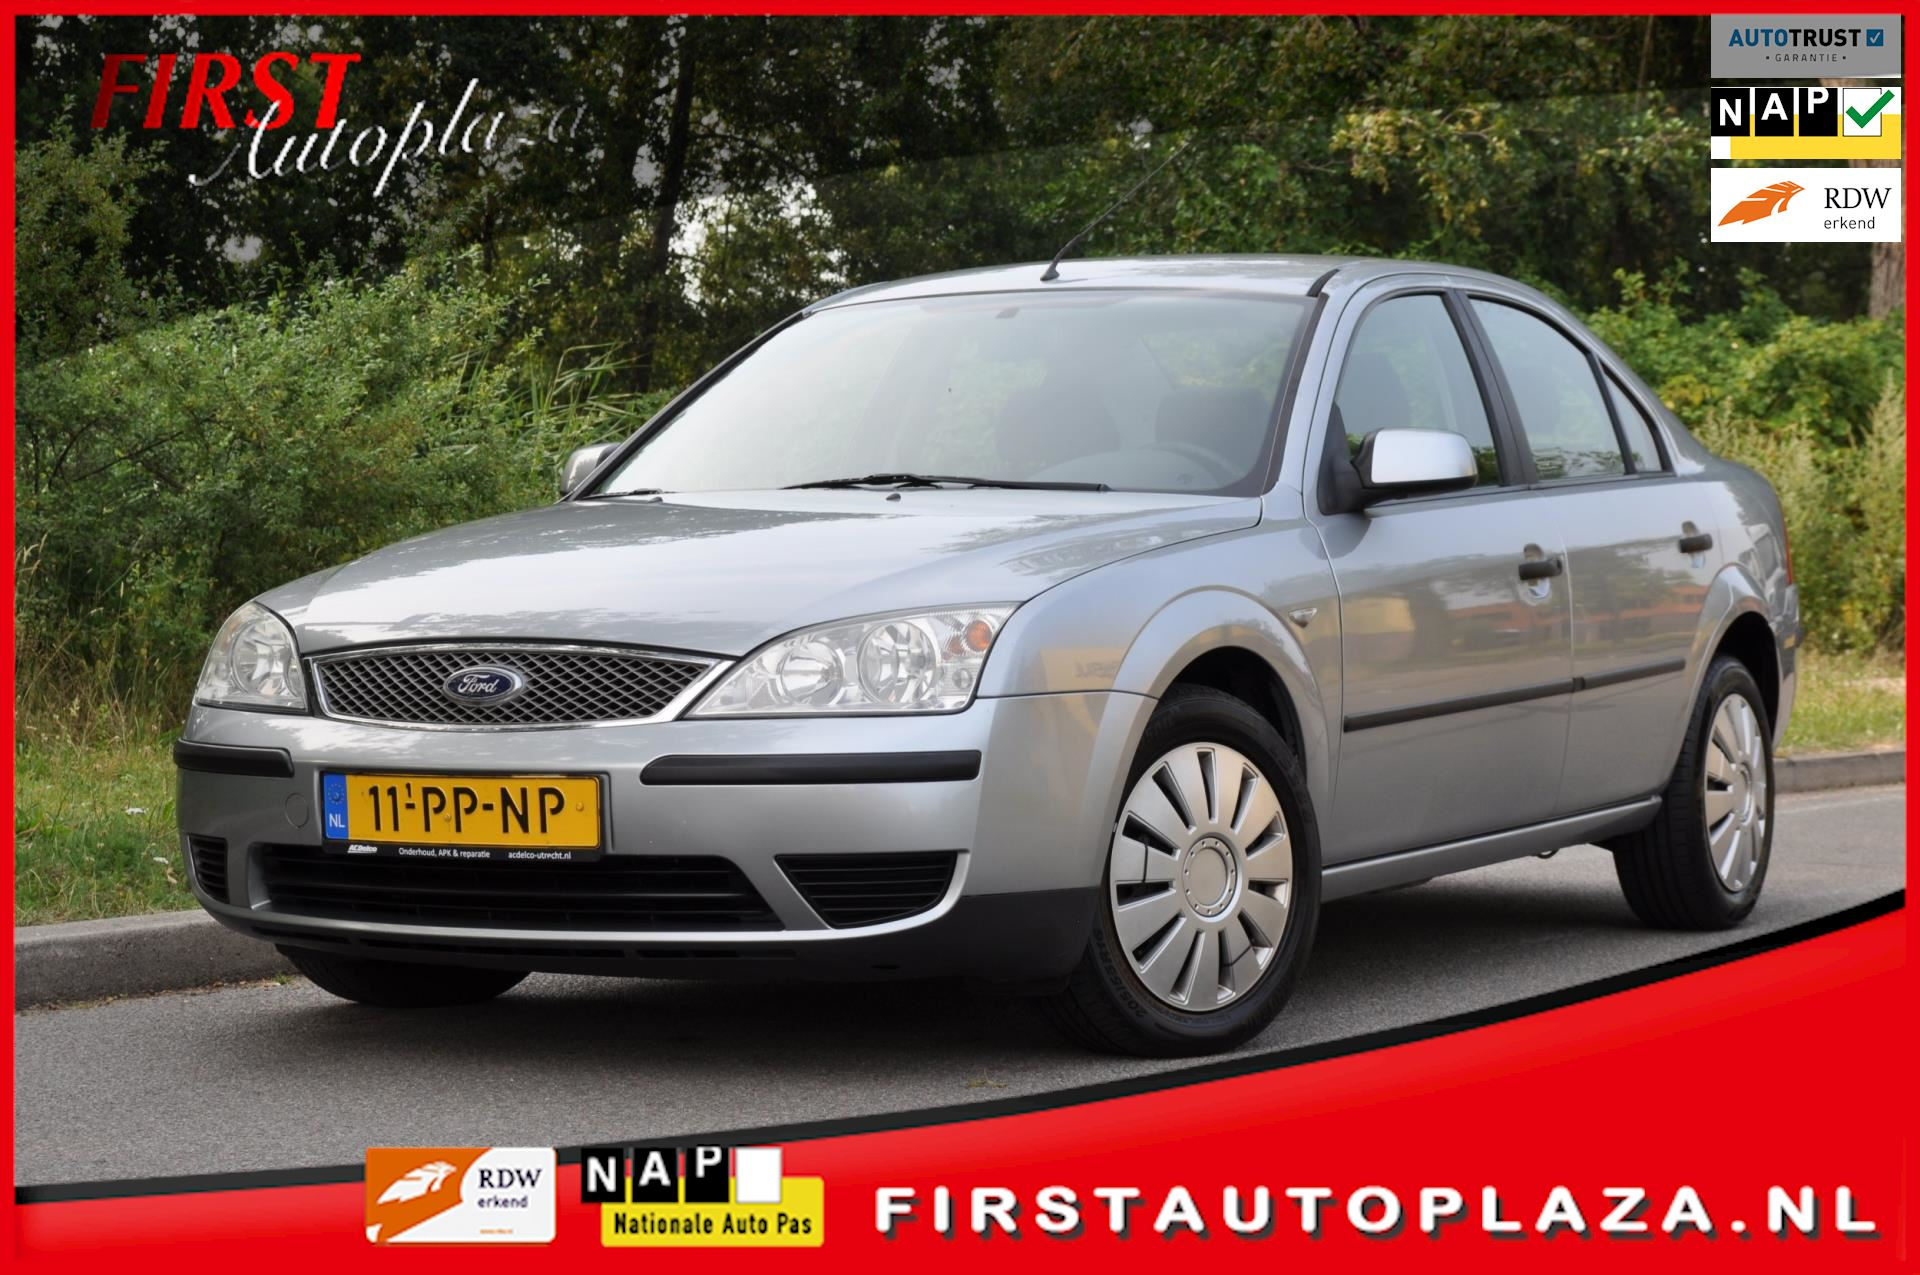 Ford Mondeo occasion - FIRST Autoplaza B.V.